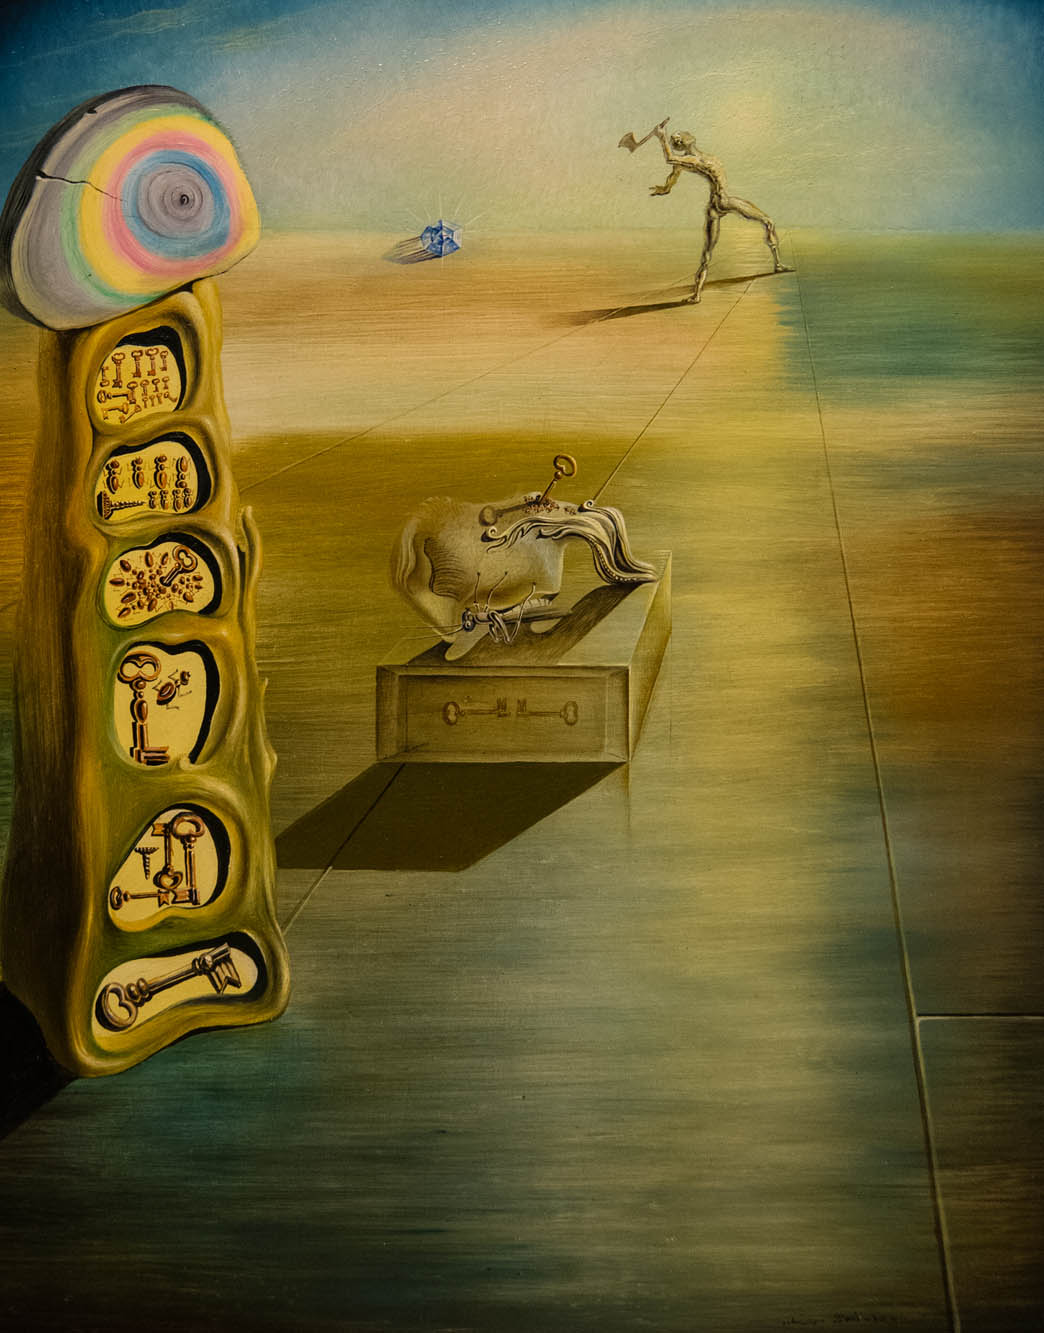 Salvador Dali painting, The Free Inclination of Desire